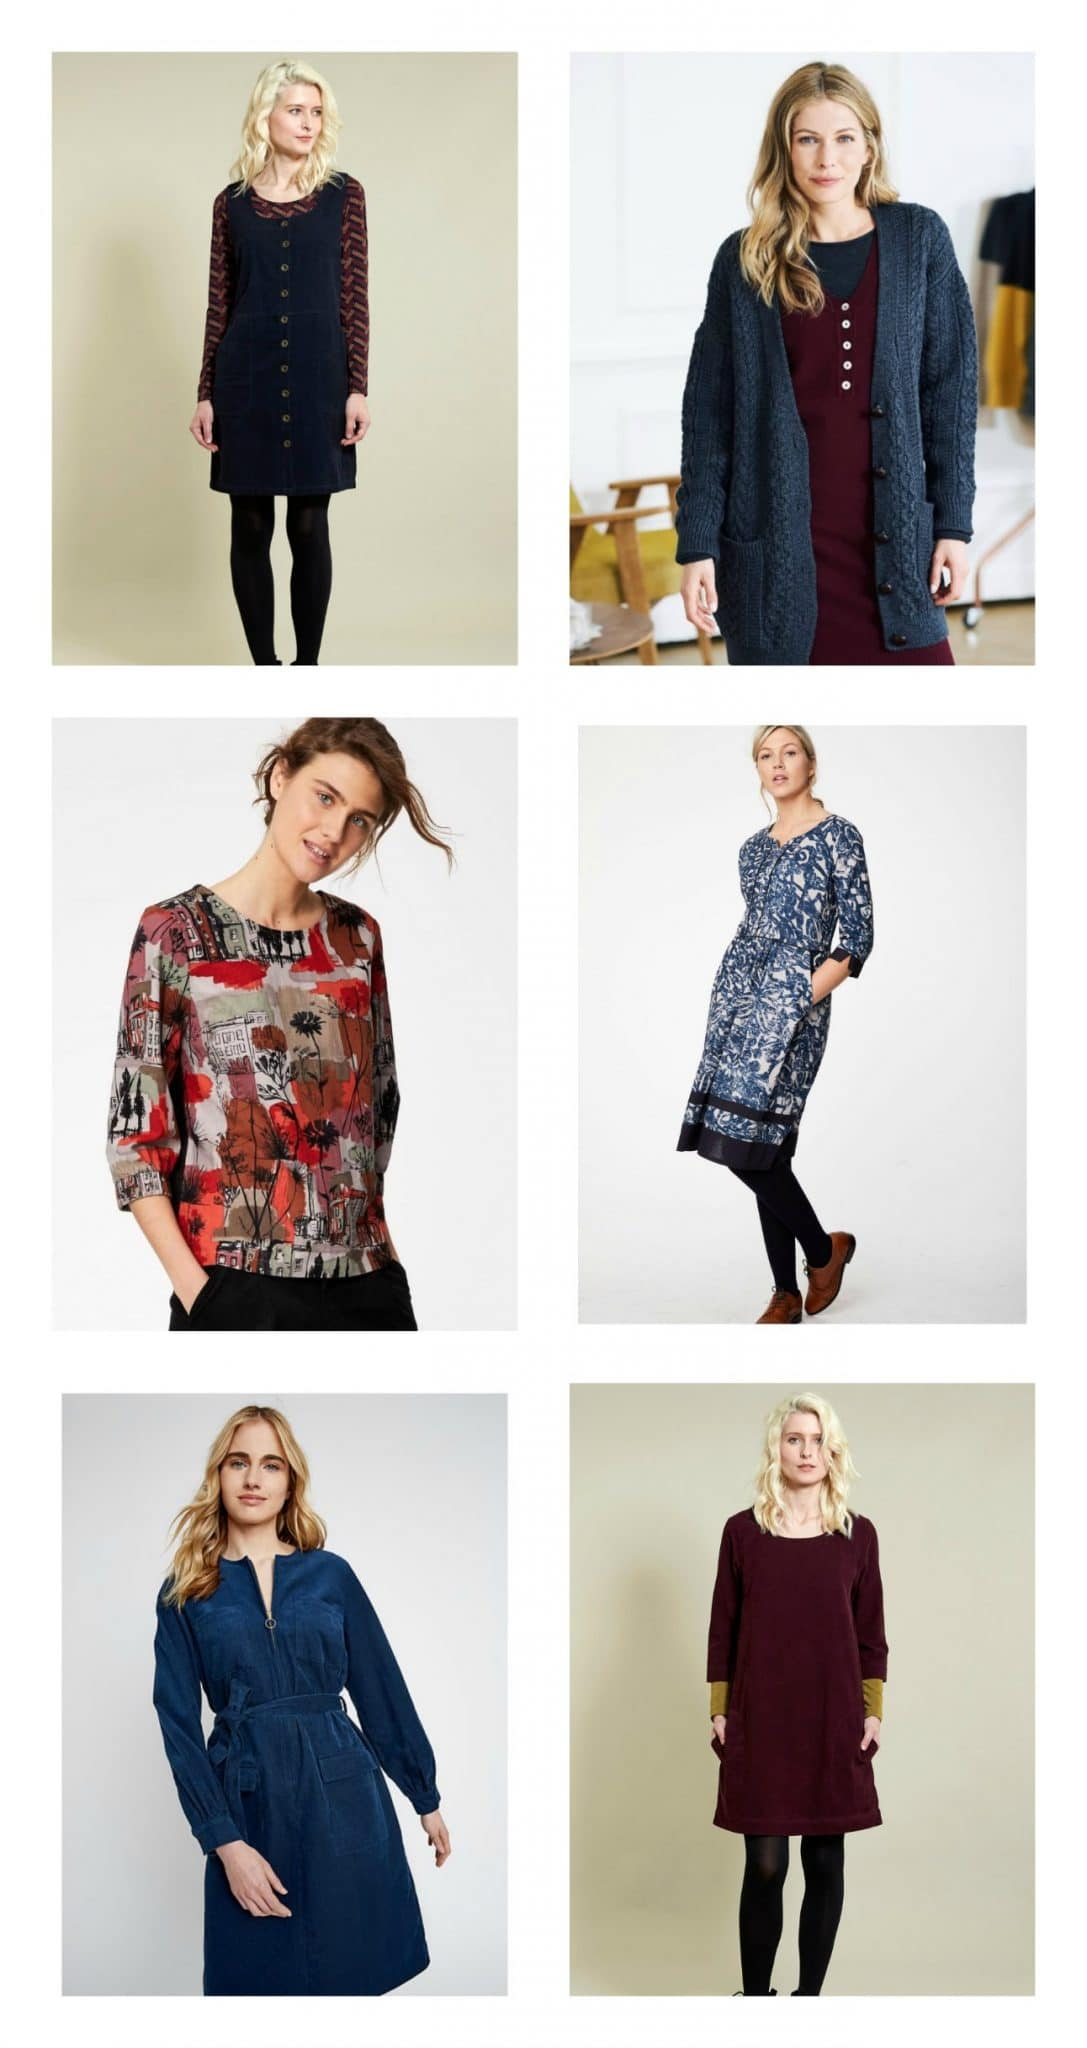 ethical clothing inspiration for autumn